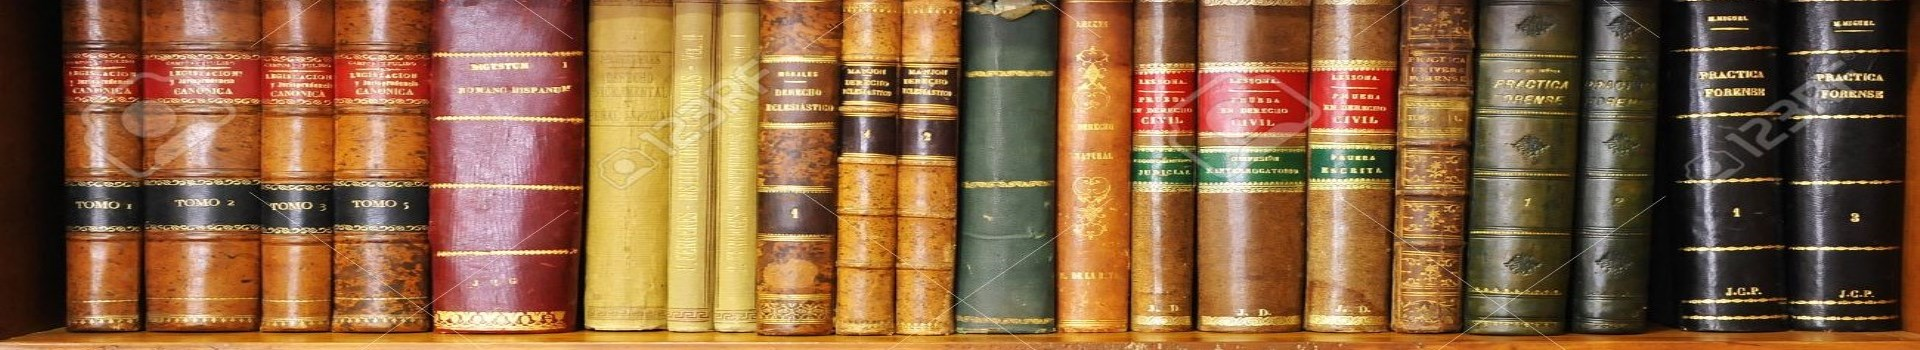 bookshelf of old books